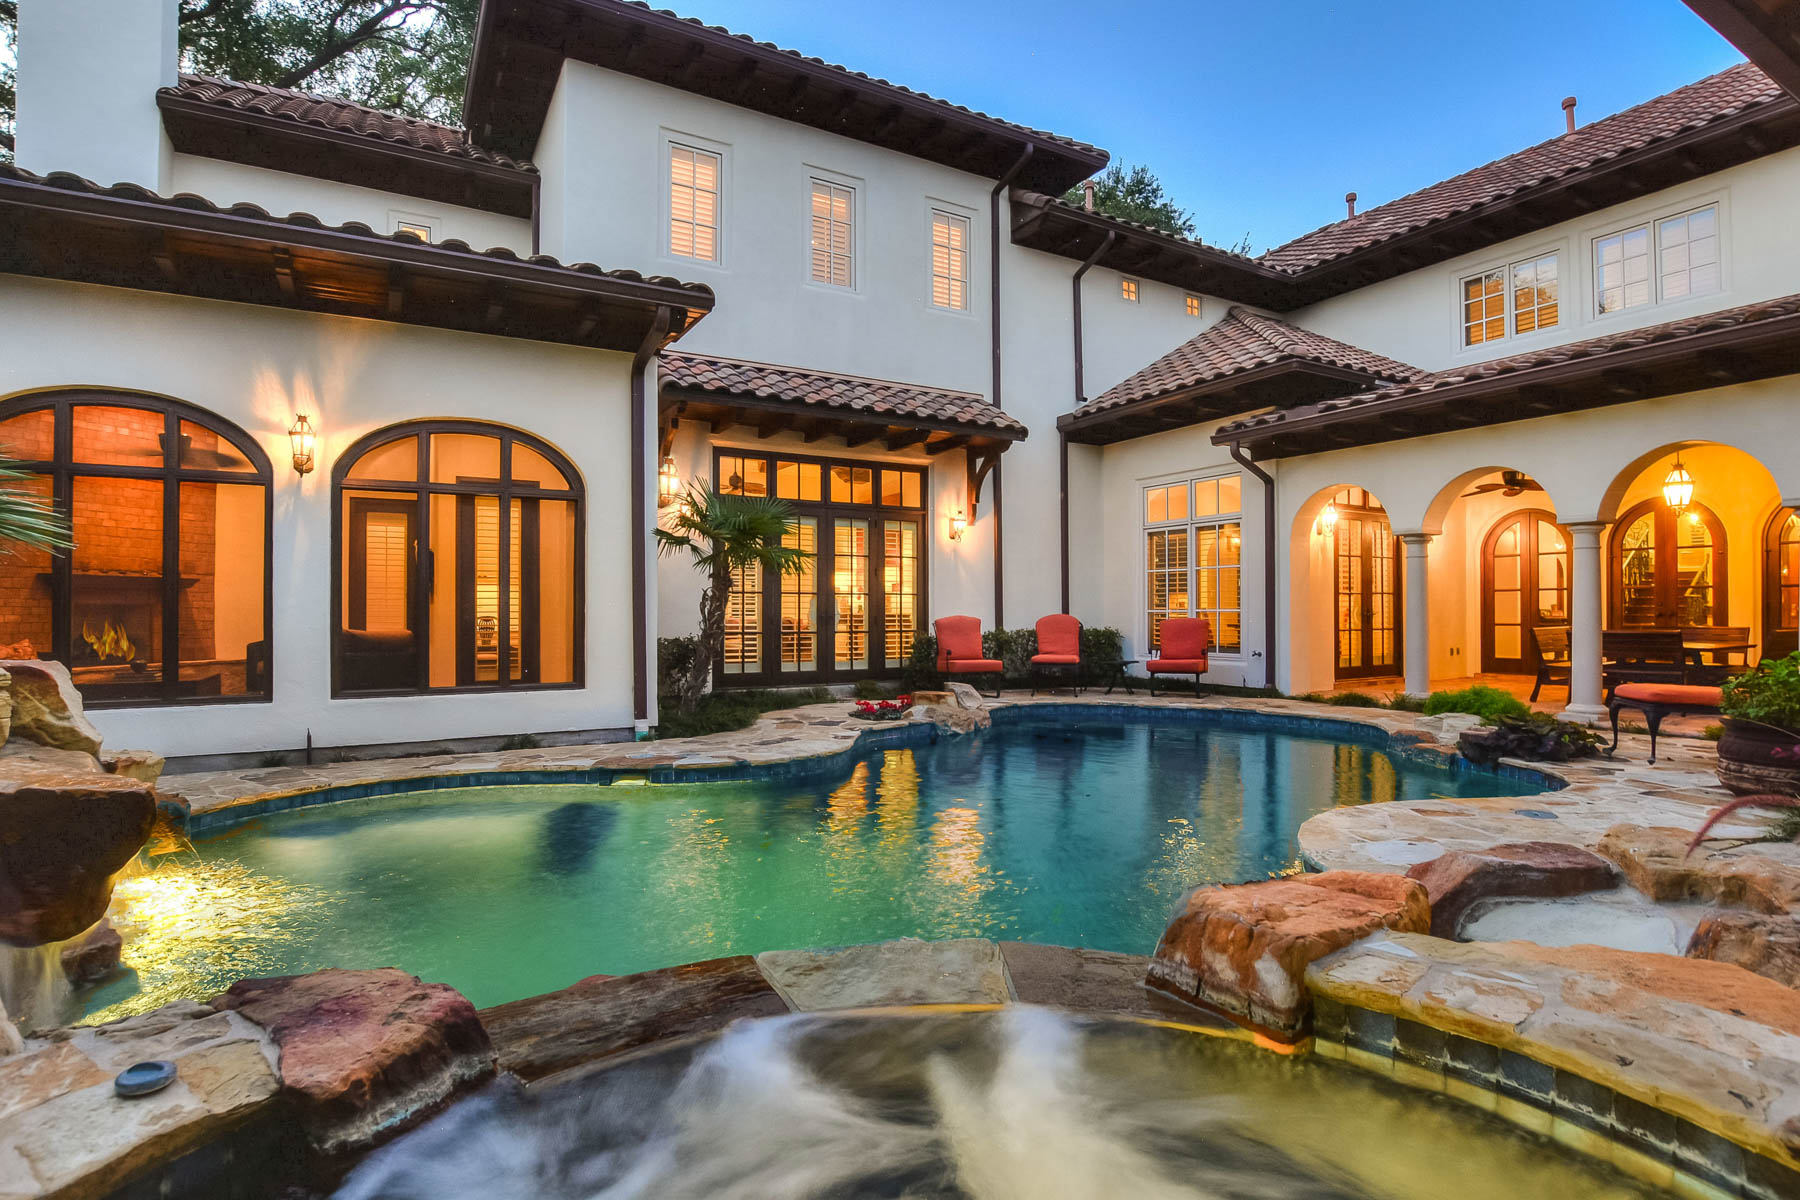 Additional photo for property listing at Timeless Style and Sophisticated Grandeur 512 Terrell Rd San Antonio, Texas 78209 United States